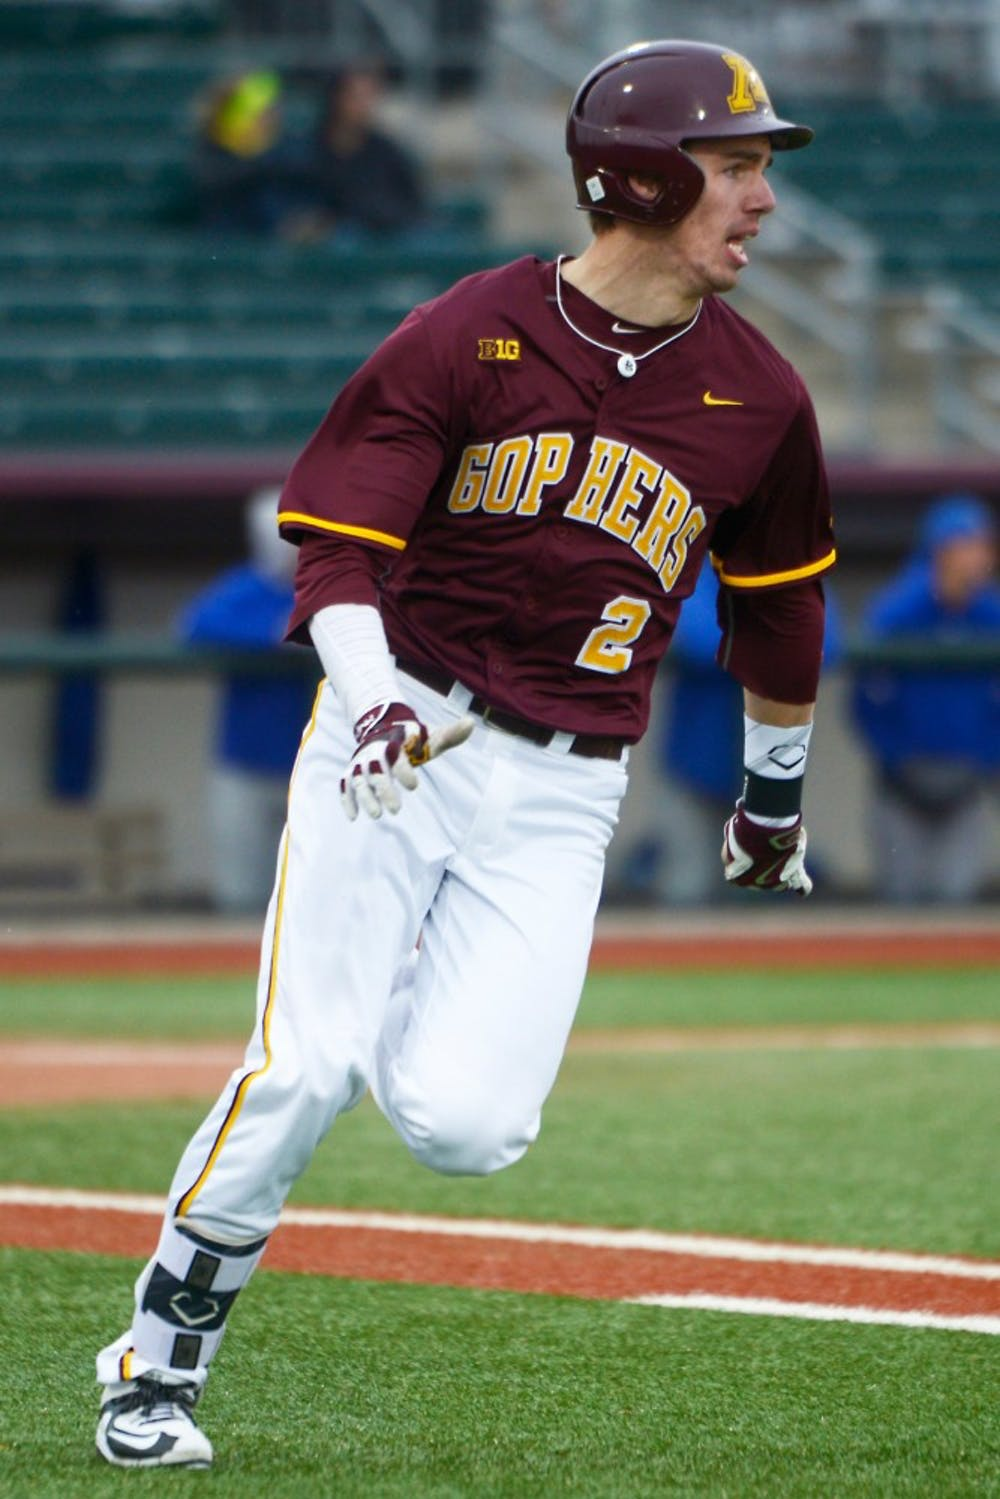 Boxwell matures after hard freshman campaign